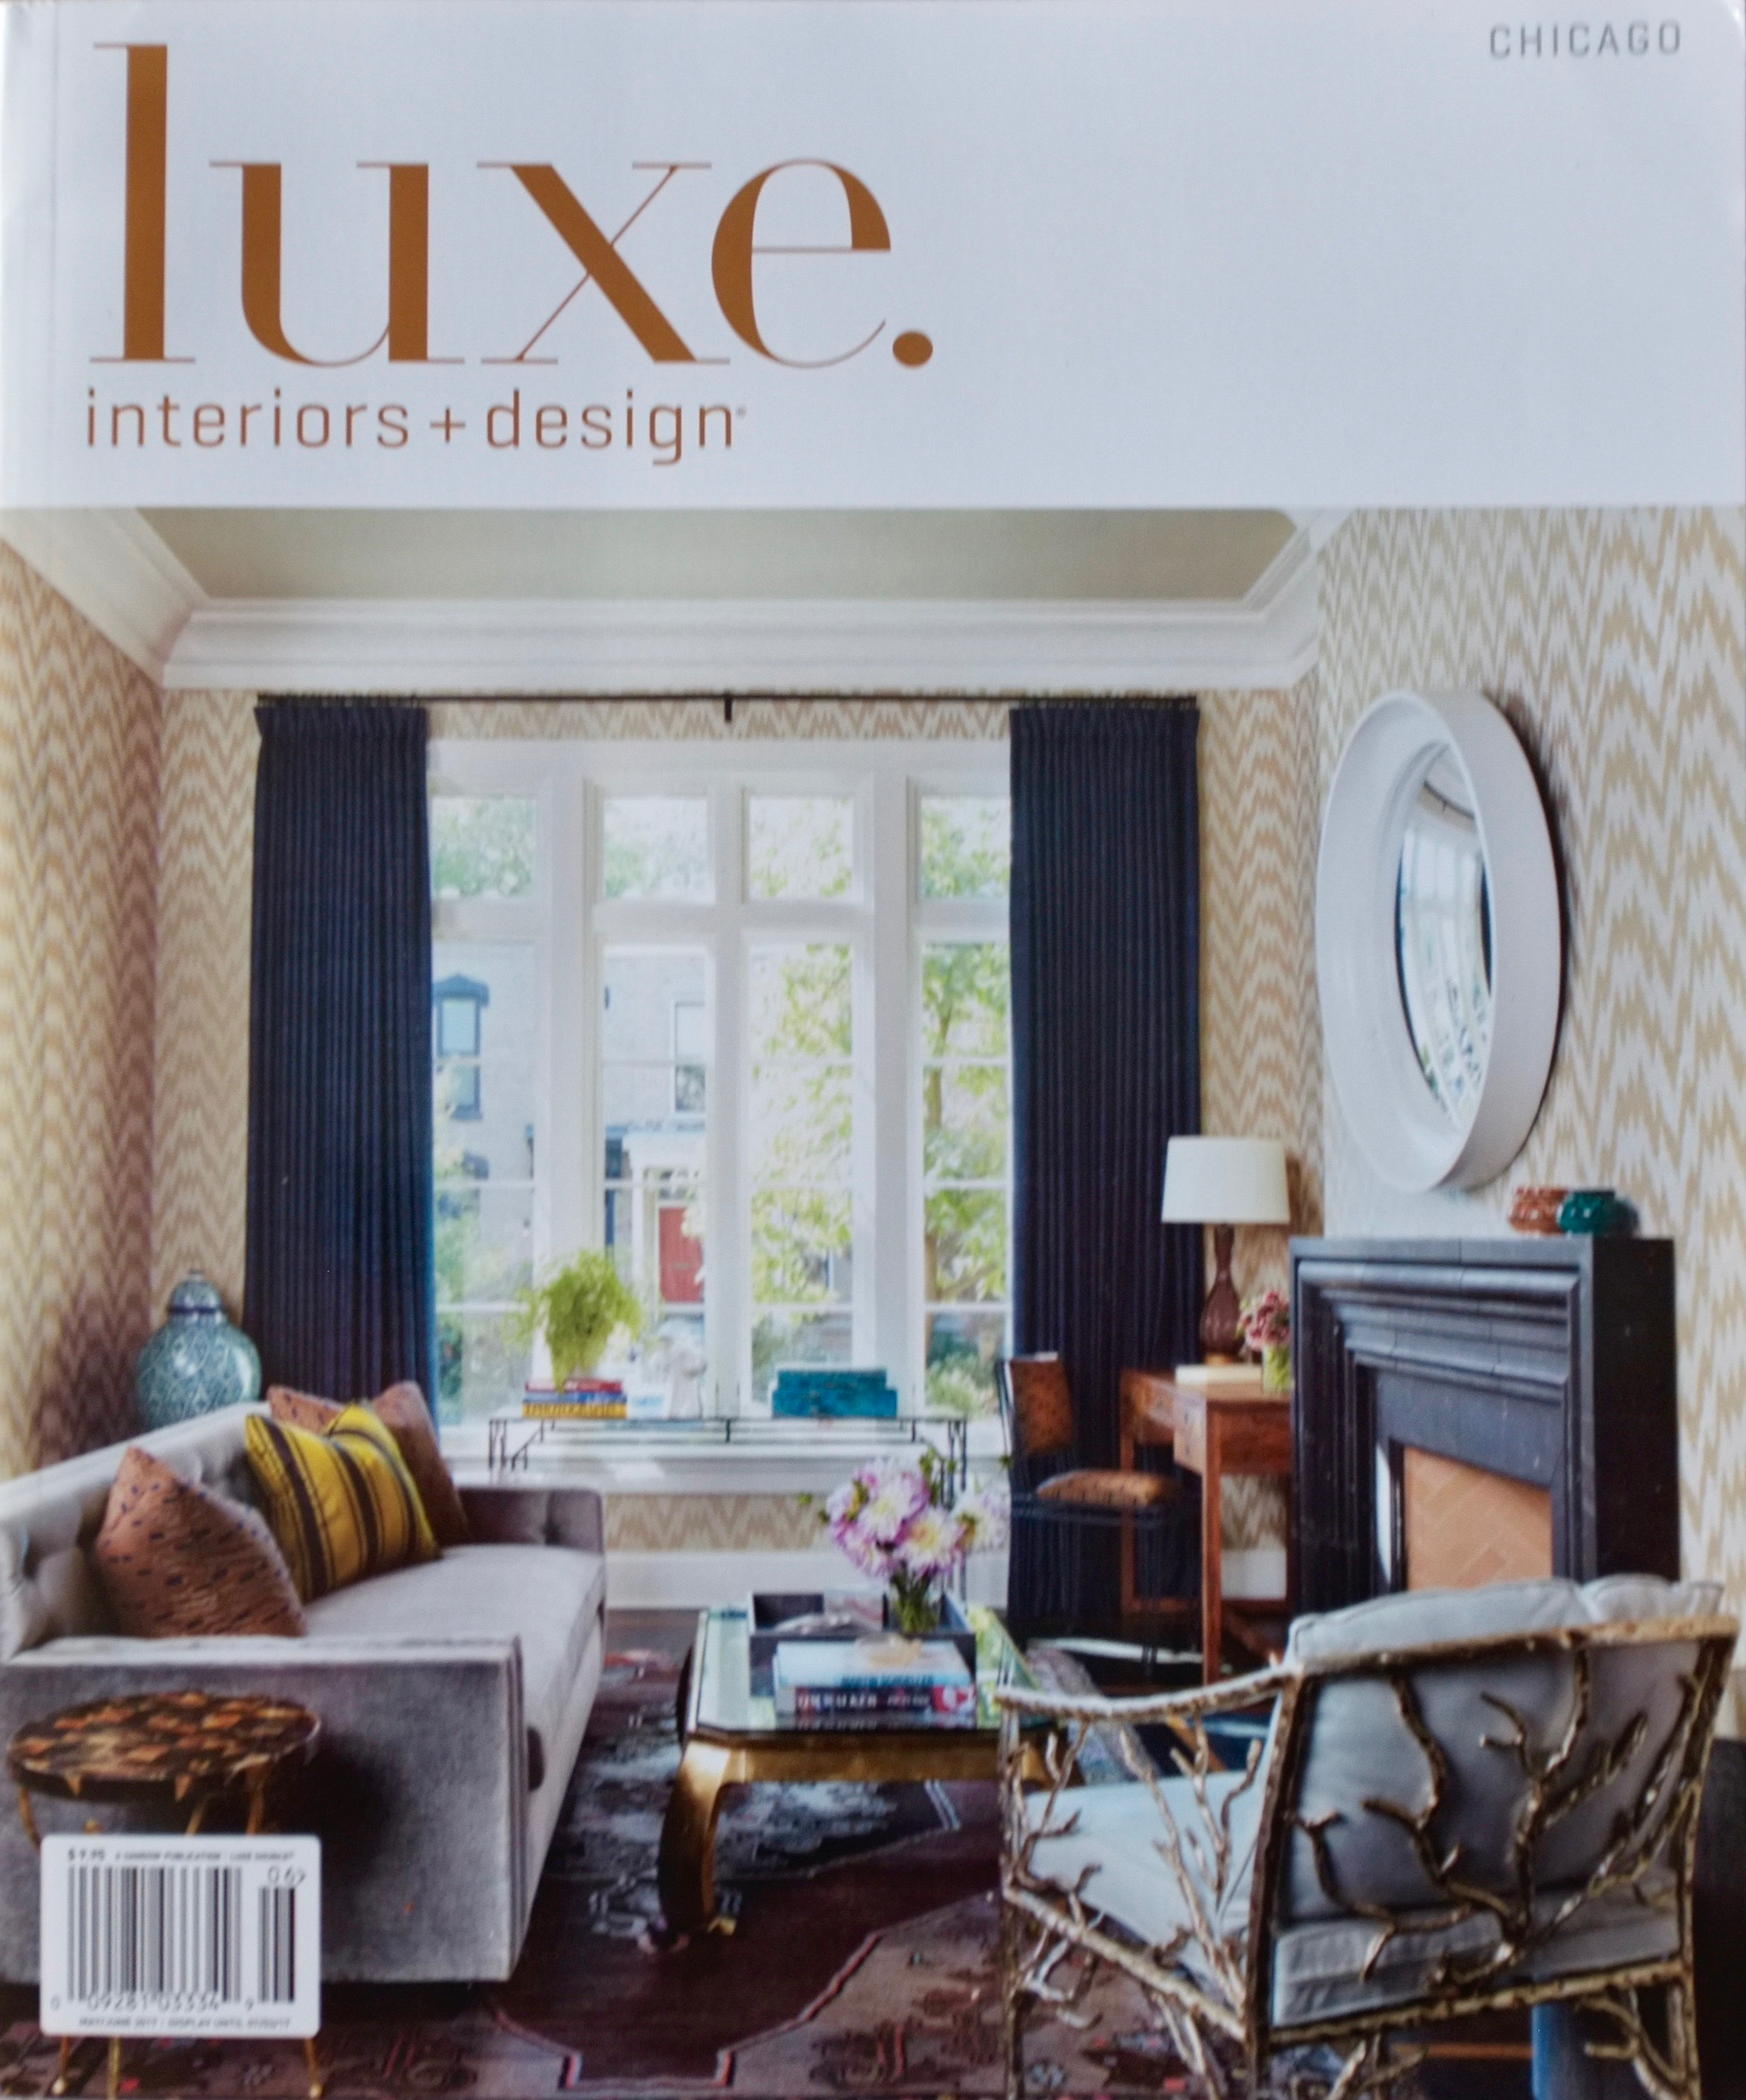 Luxe. Interior + Design - May/June 2017